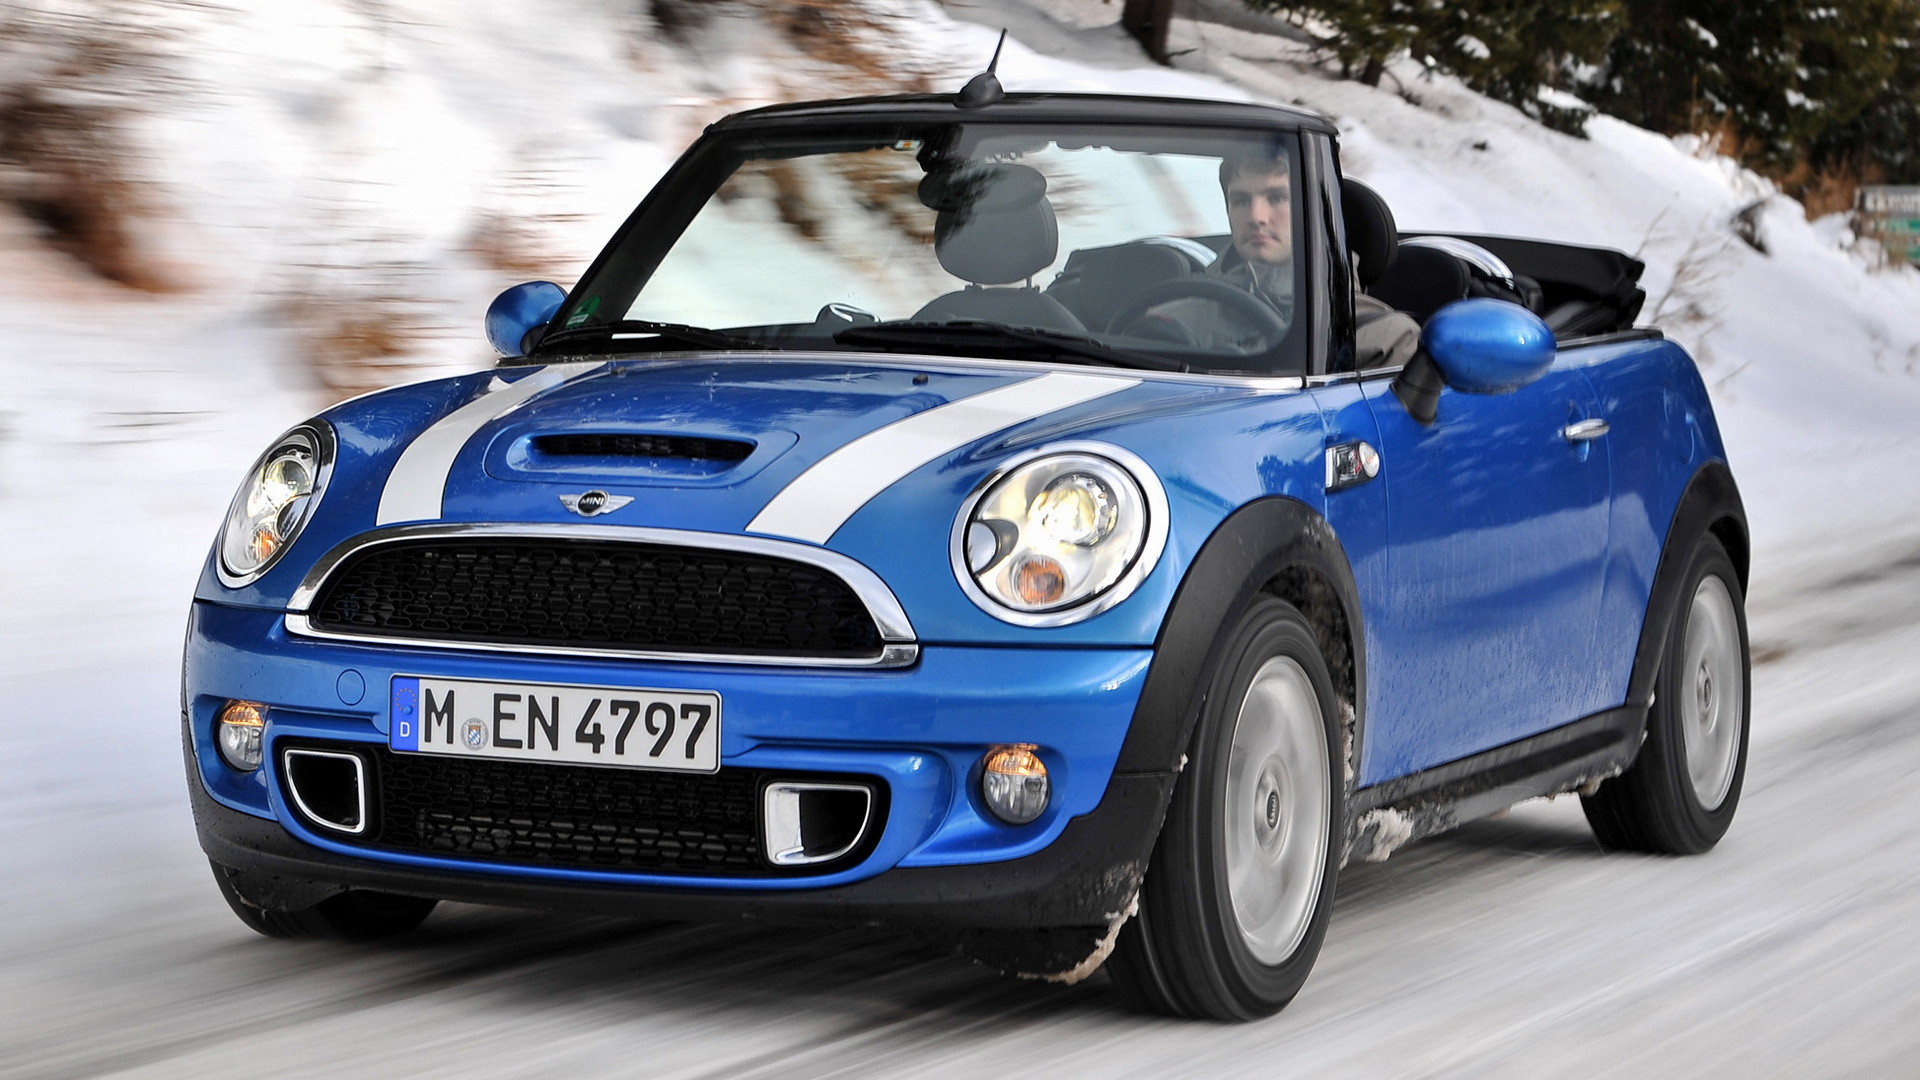 2010 mini cooper s cabrio wallpapers and hd images car. Black Bedroom Furniture Sets. Home Design Ideas